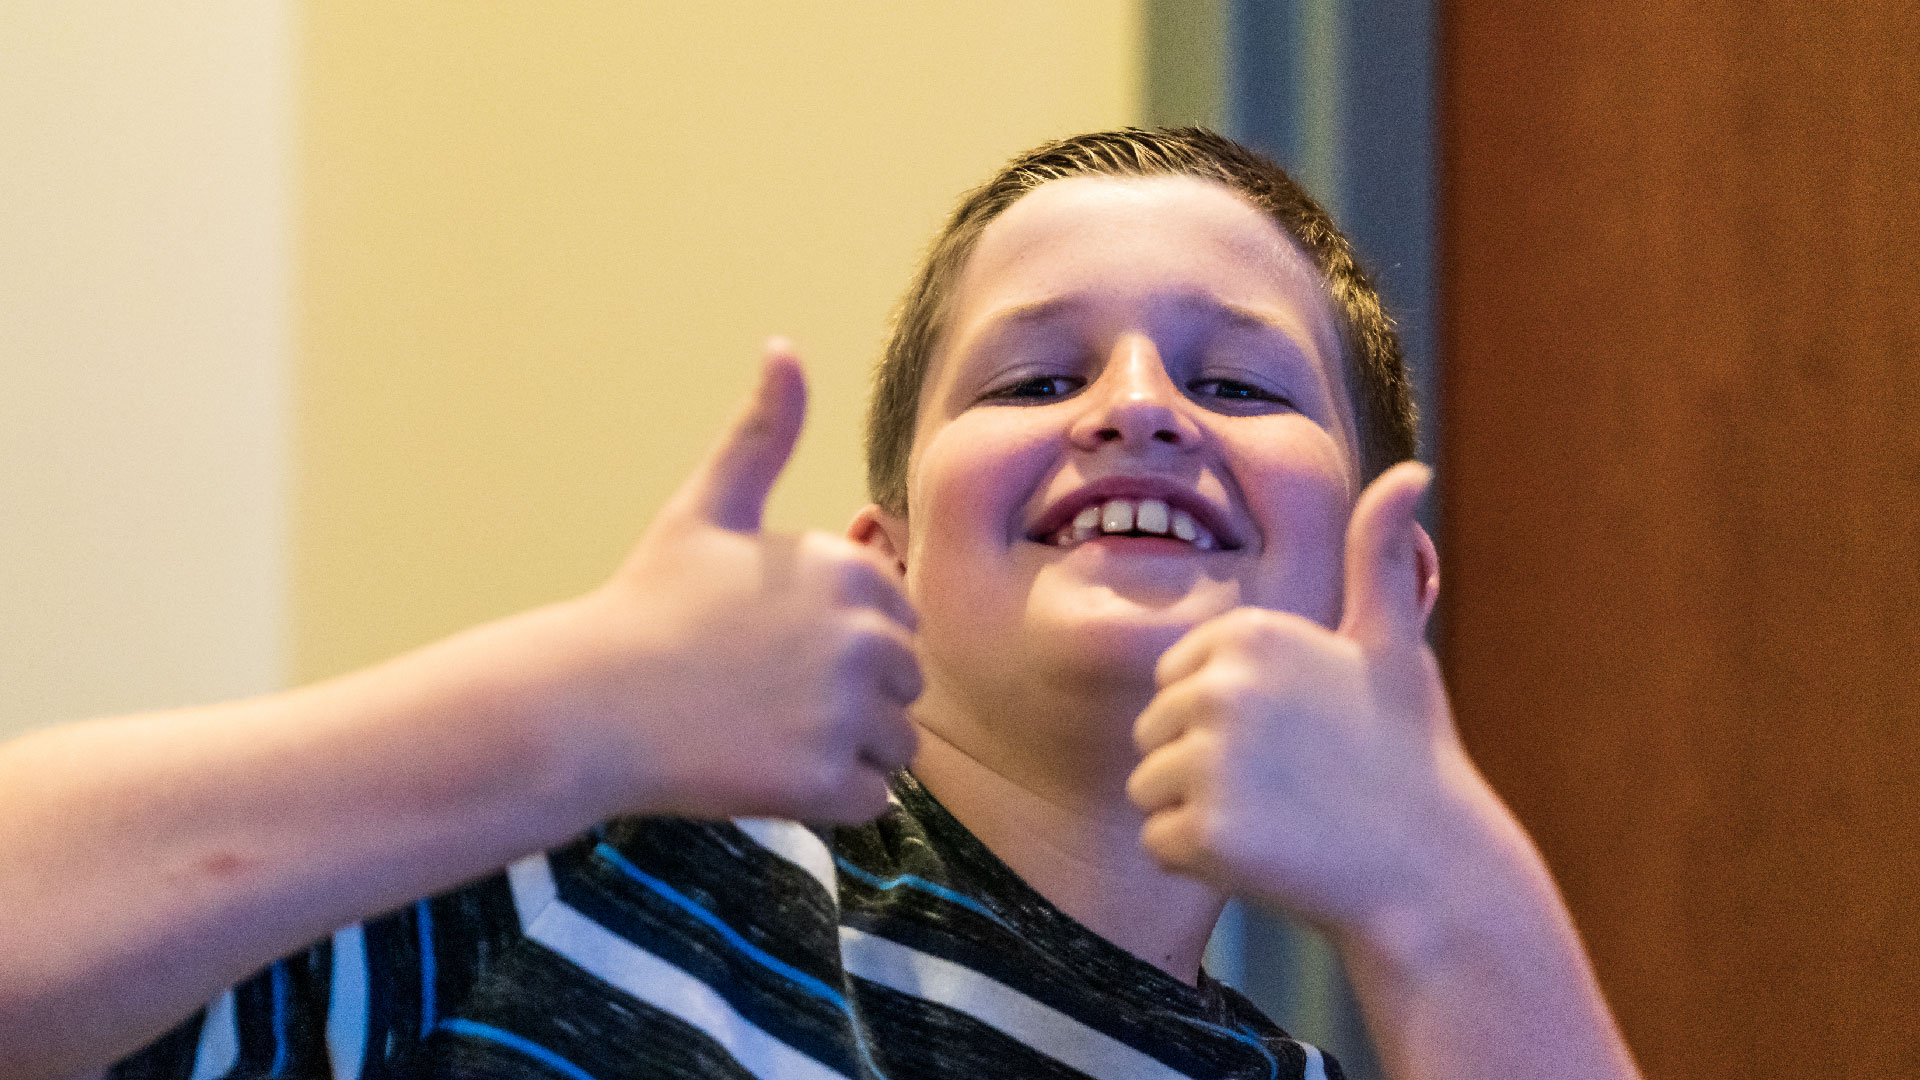 A child smiling holding two thumbs up at Brookwood Church